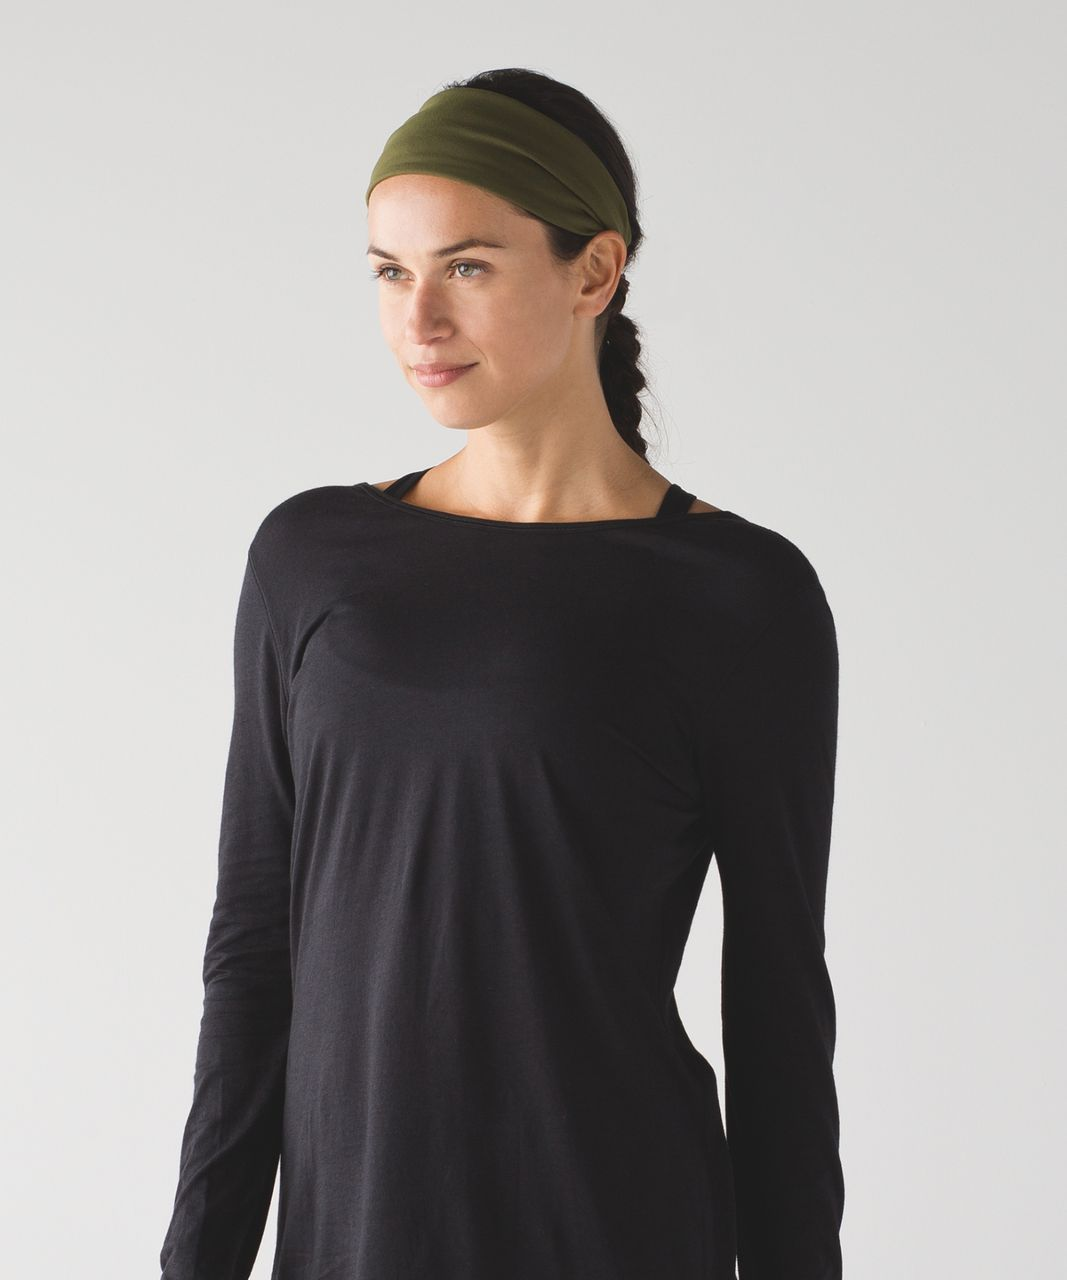 Lululemon Fringe Fighter Headband - Brave Olive / Heathered Black